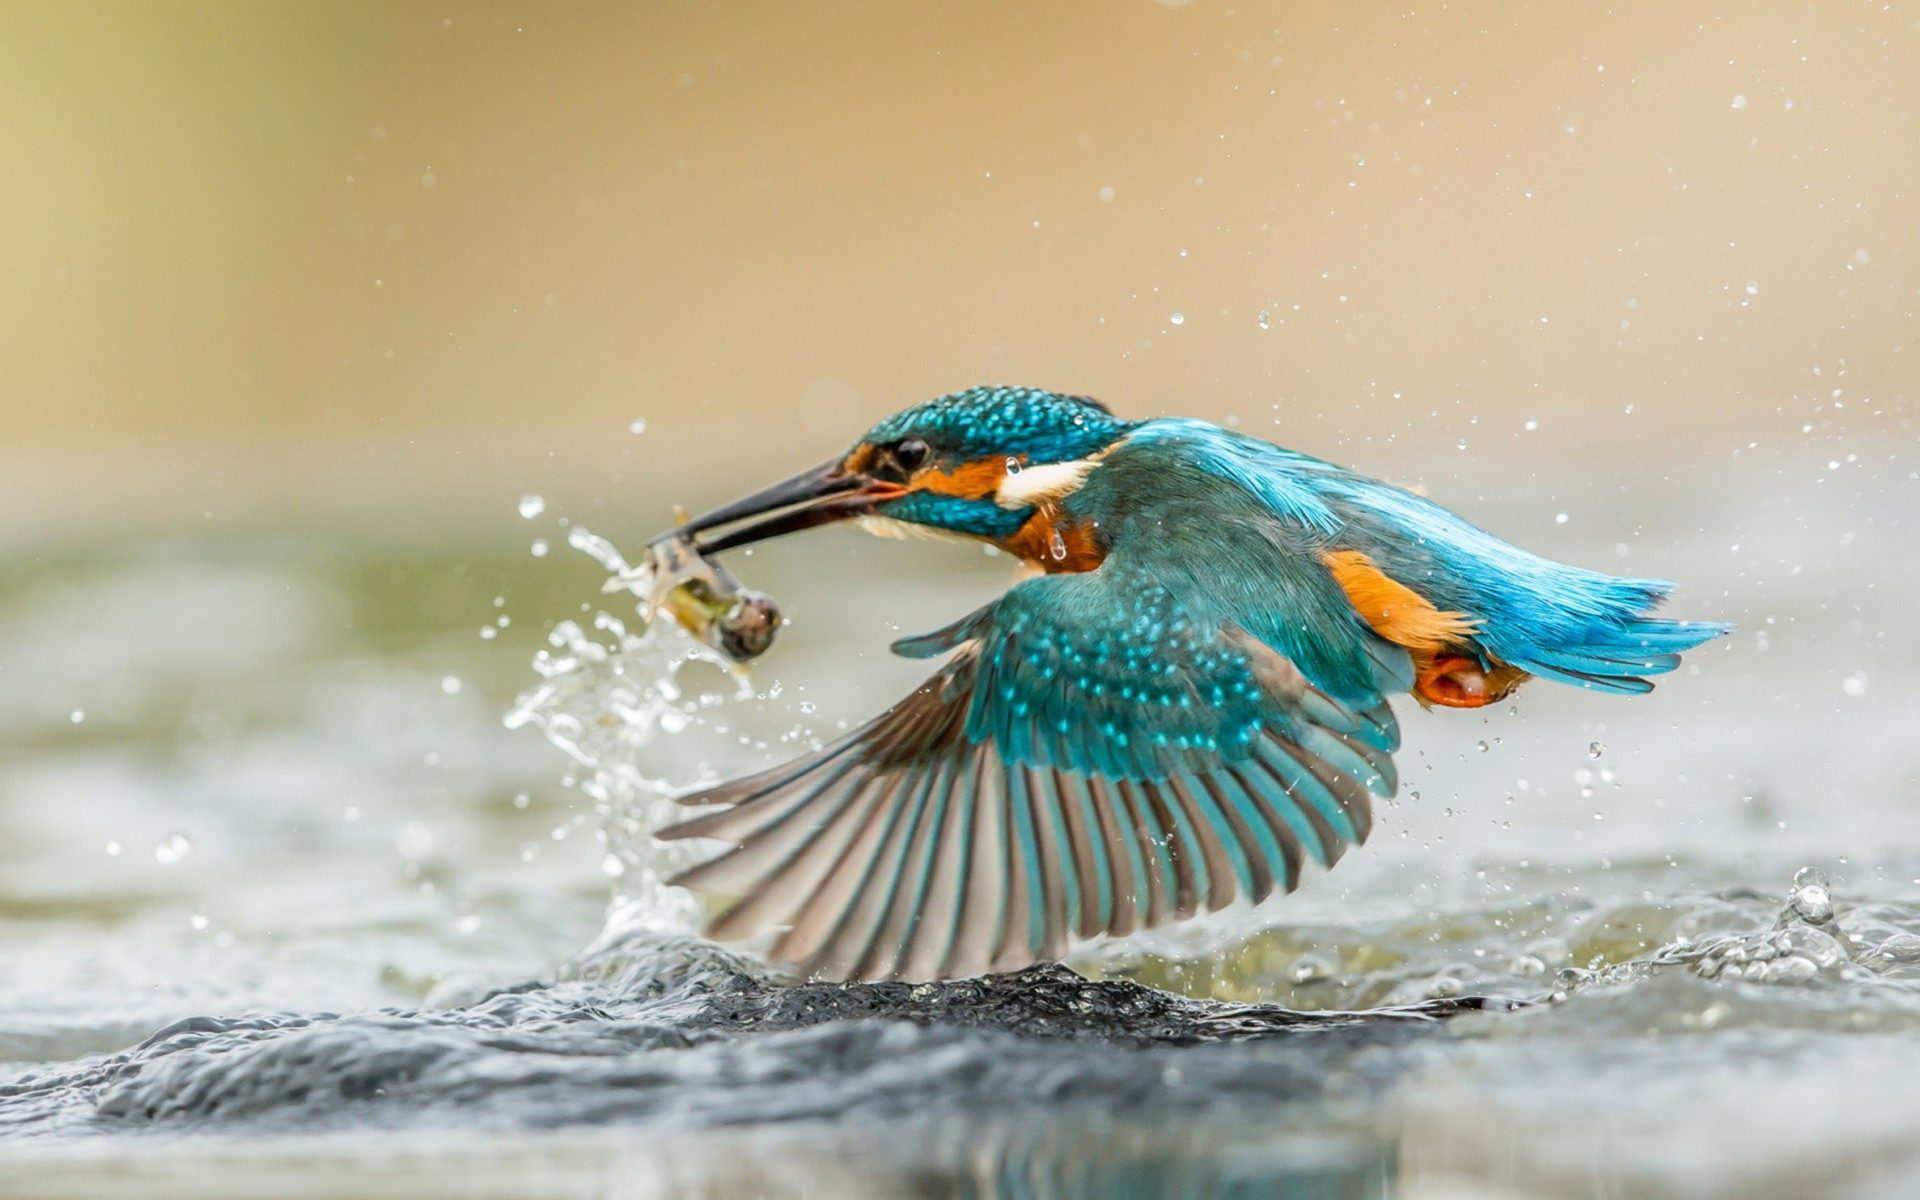 Iphone 5 Wallpaper Dimensions Kingfisher Bird With Caught Fish Desktop Wallpaper Hd